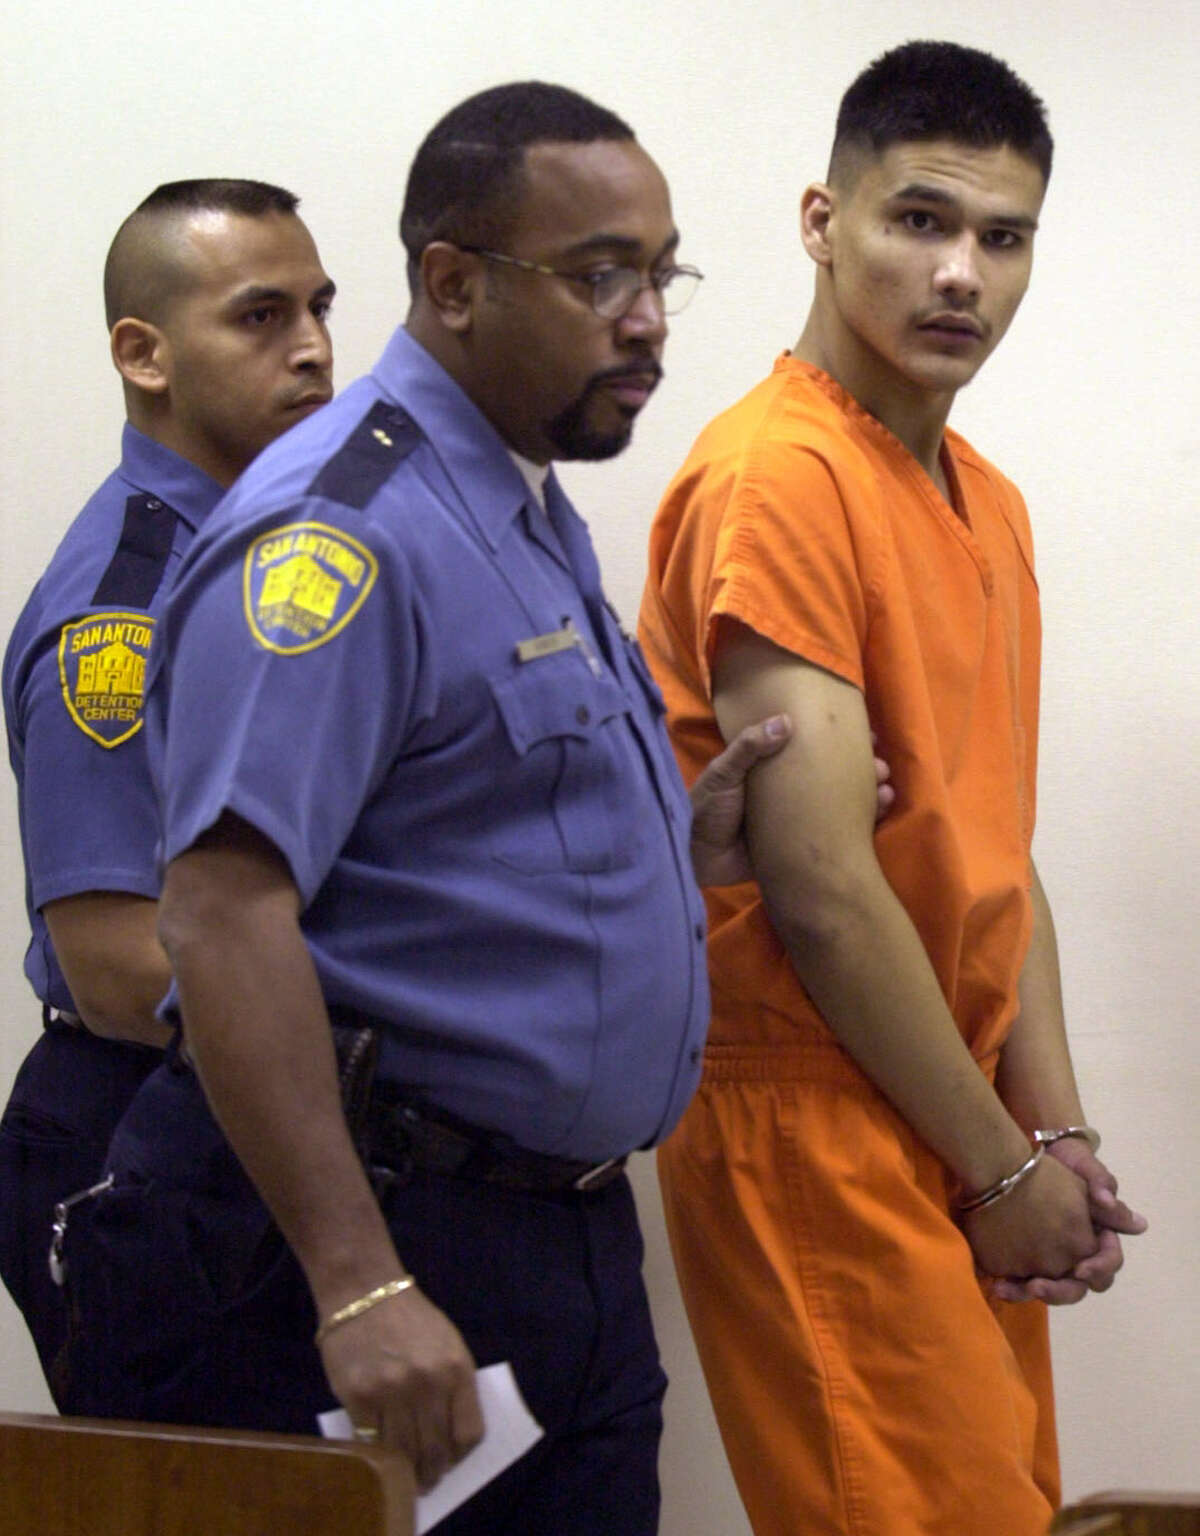 """Manuel Fernando Garza, 20, is escorted Sunday morning Feb. 4, 2001 into the magistrate's office to be charged with first degree murder in the shooting death of Officer John """"Rocky"""" Riojas."""